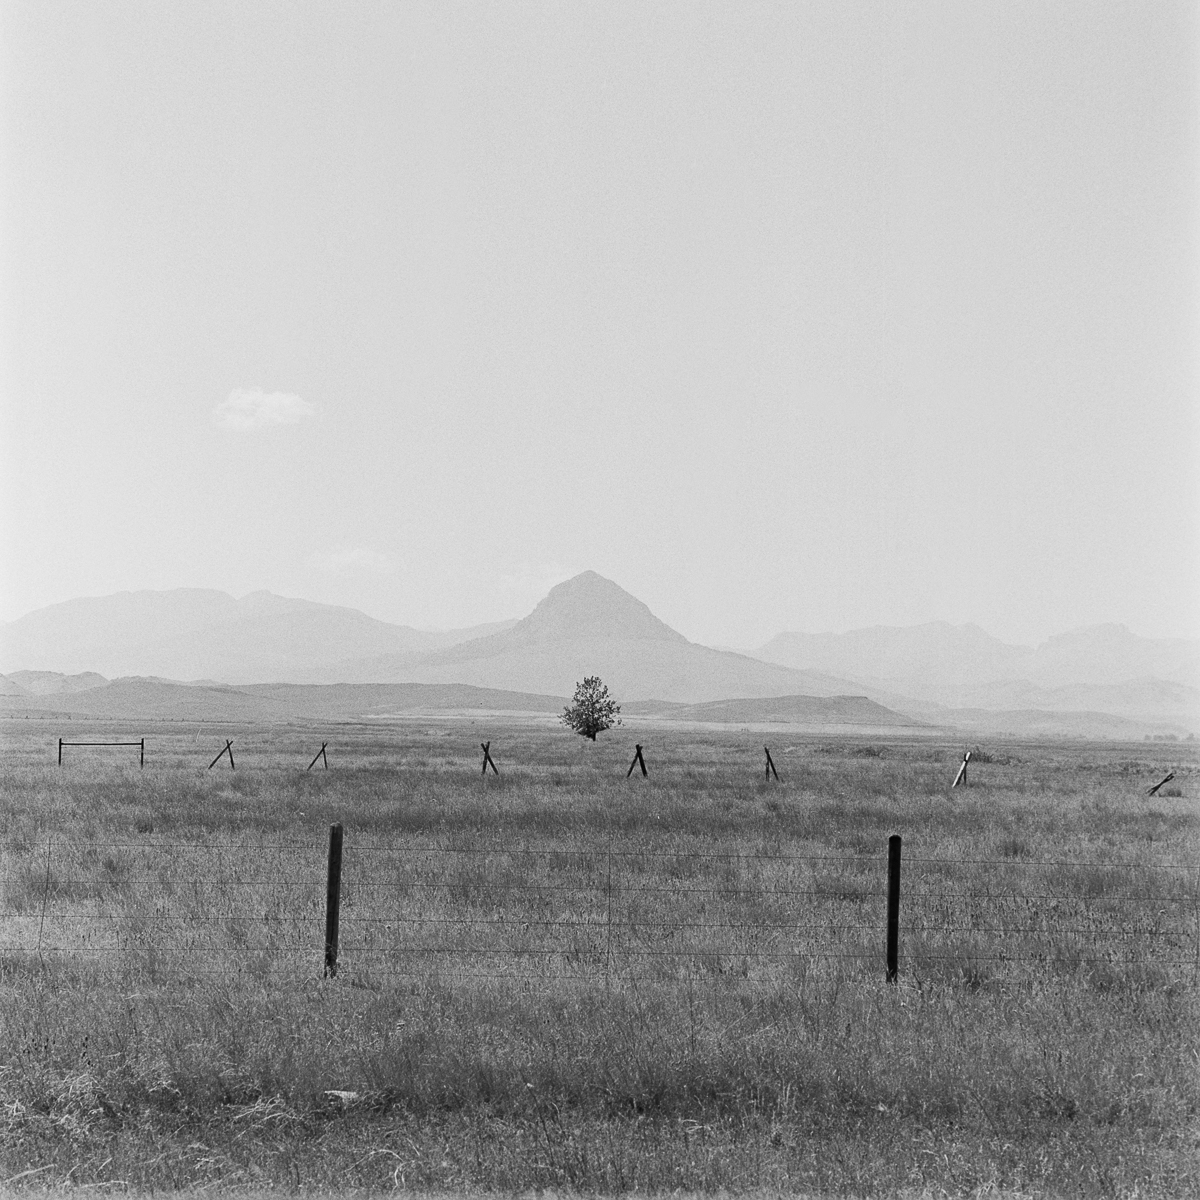 Northern Montana Tree Fence Mountain black and white Kodak TriX